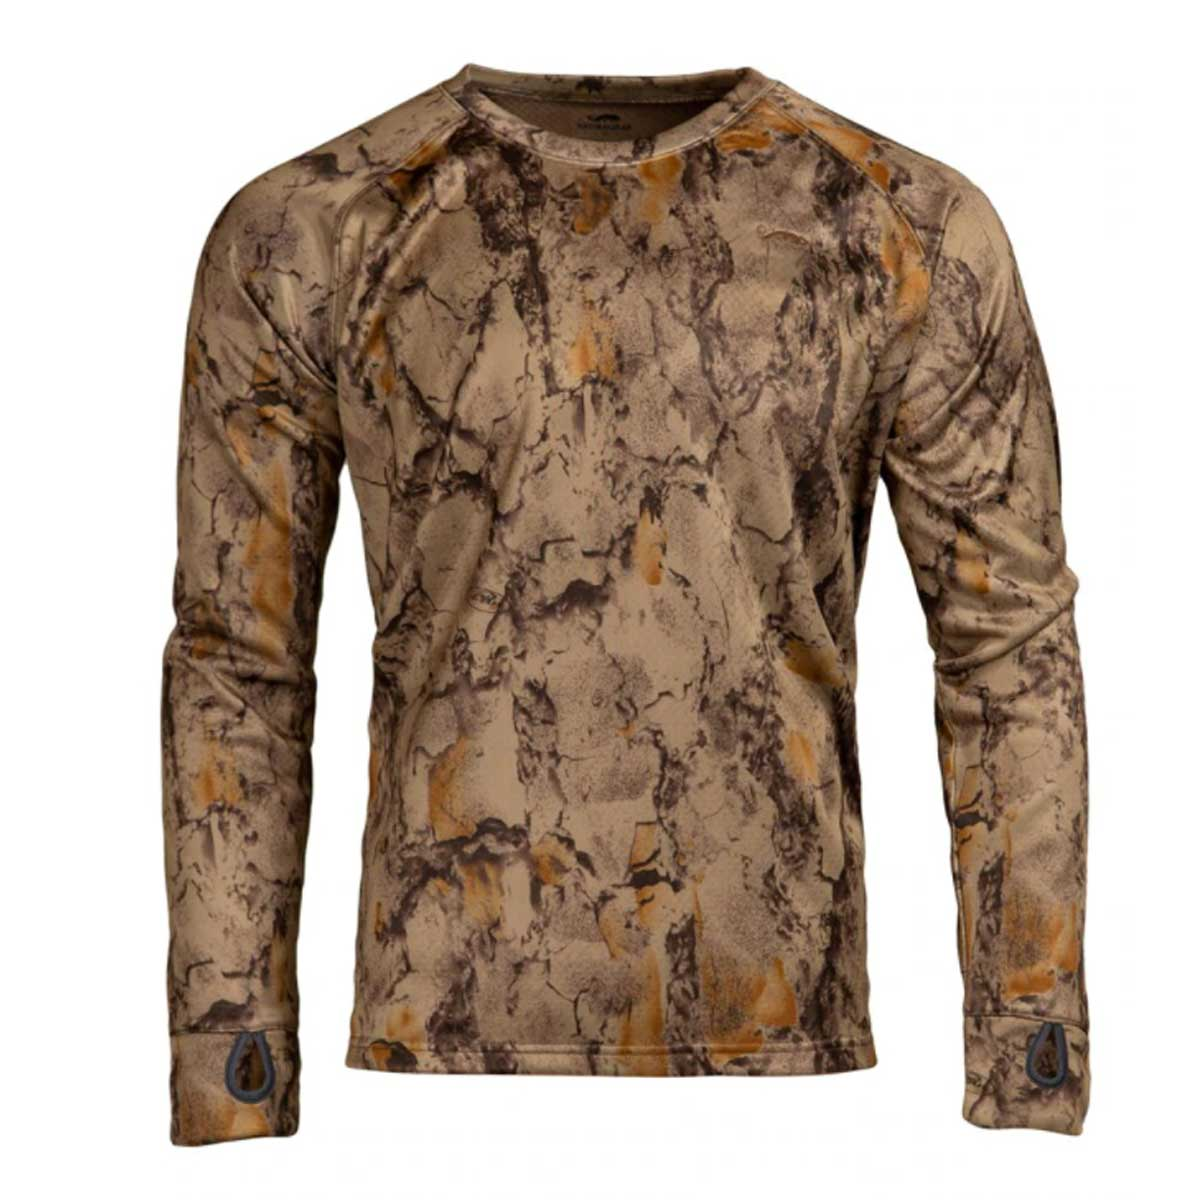 NATURAL GEAR FULL DRAW MID-WEIGHT GRID BACK FLEECE CREW TOP main photo.